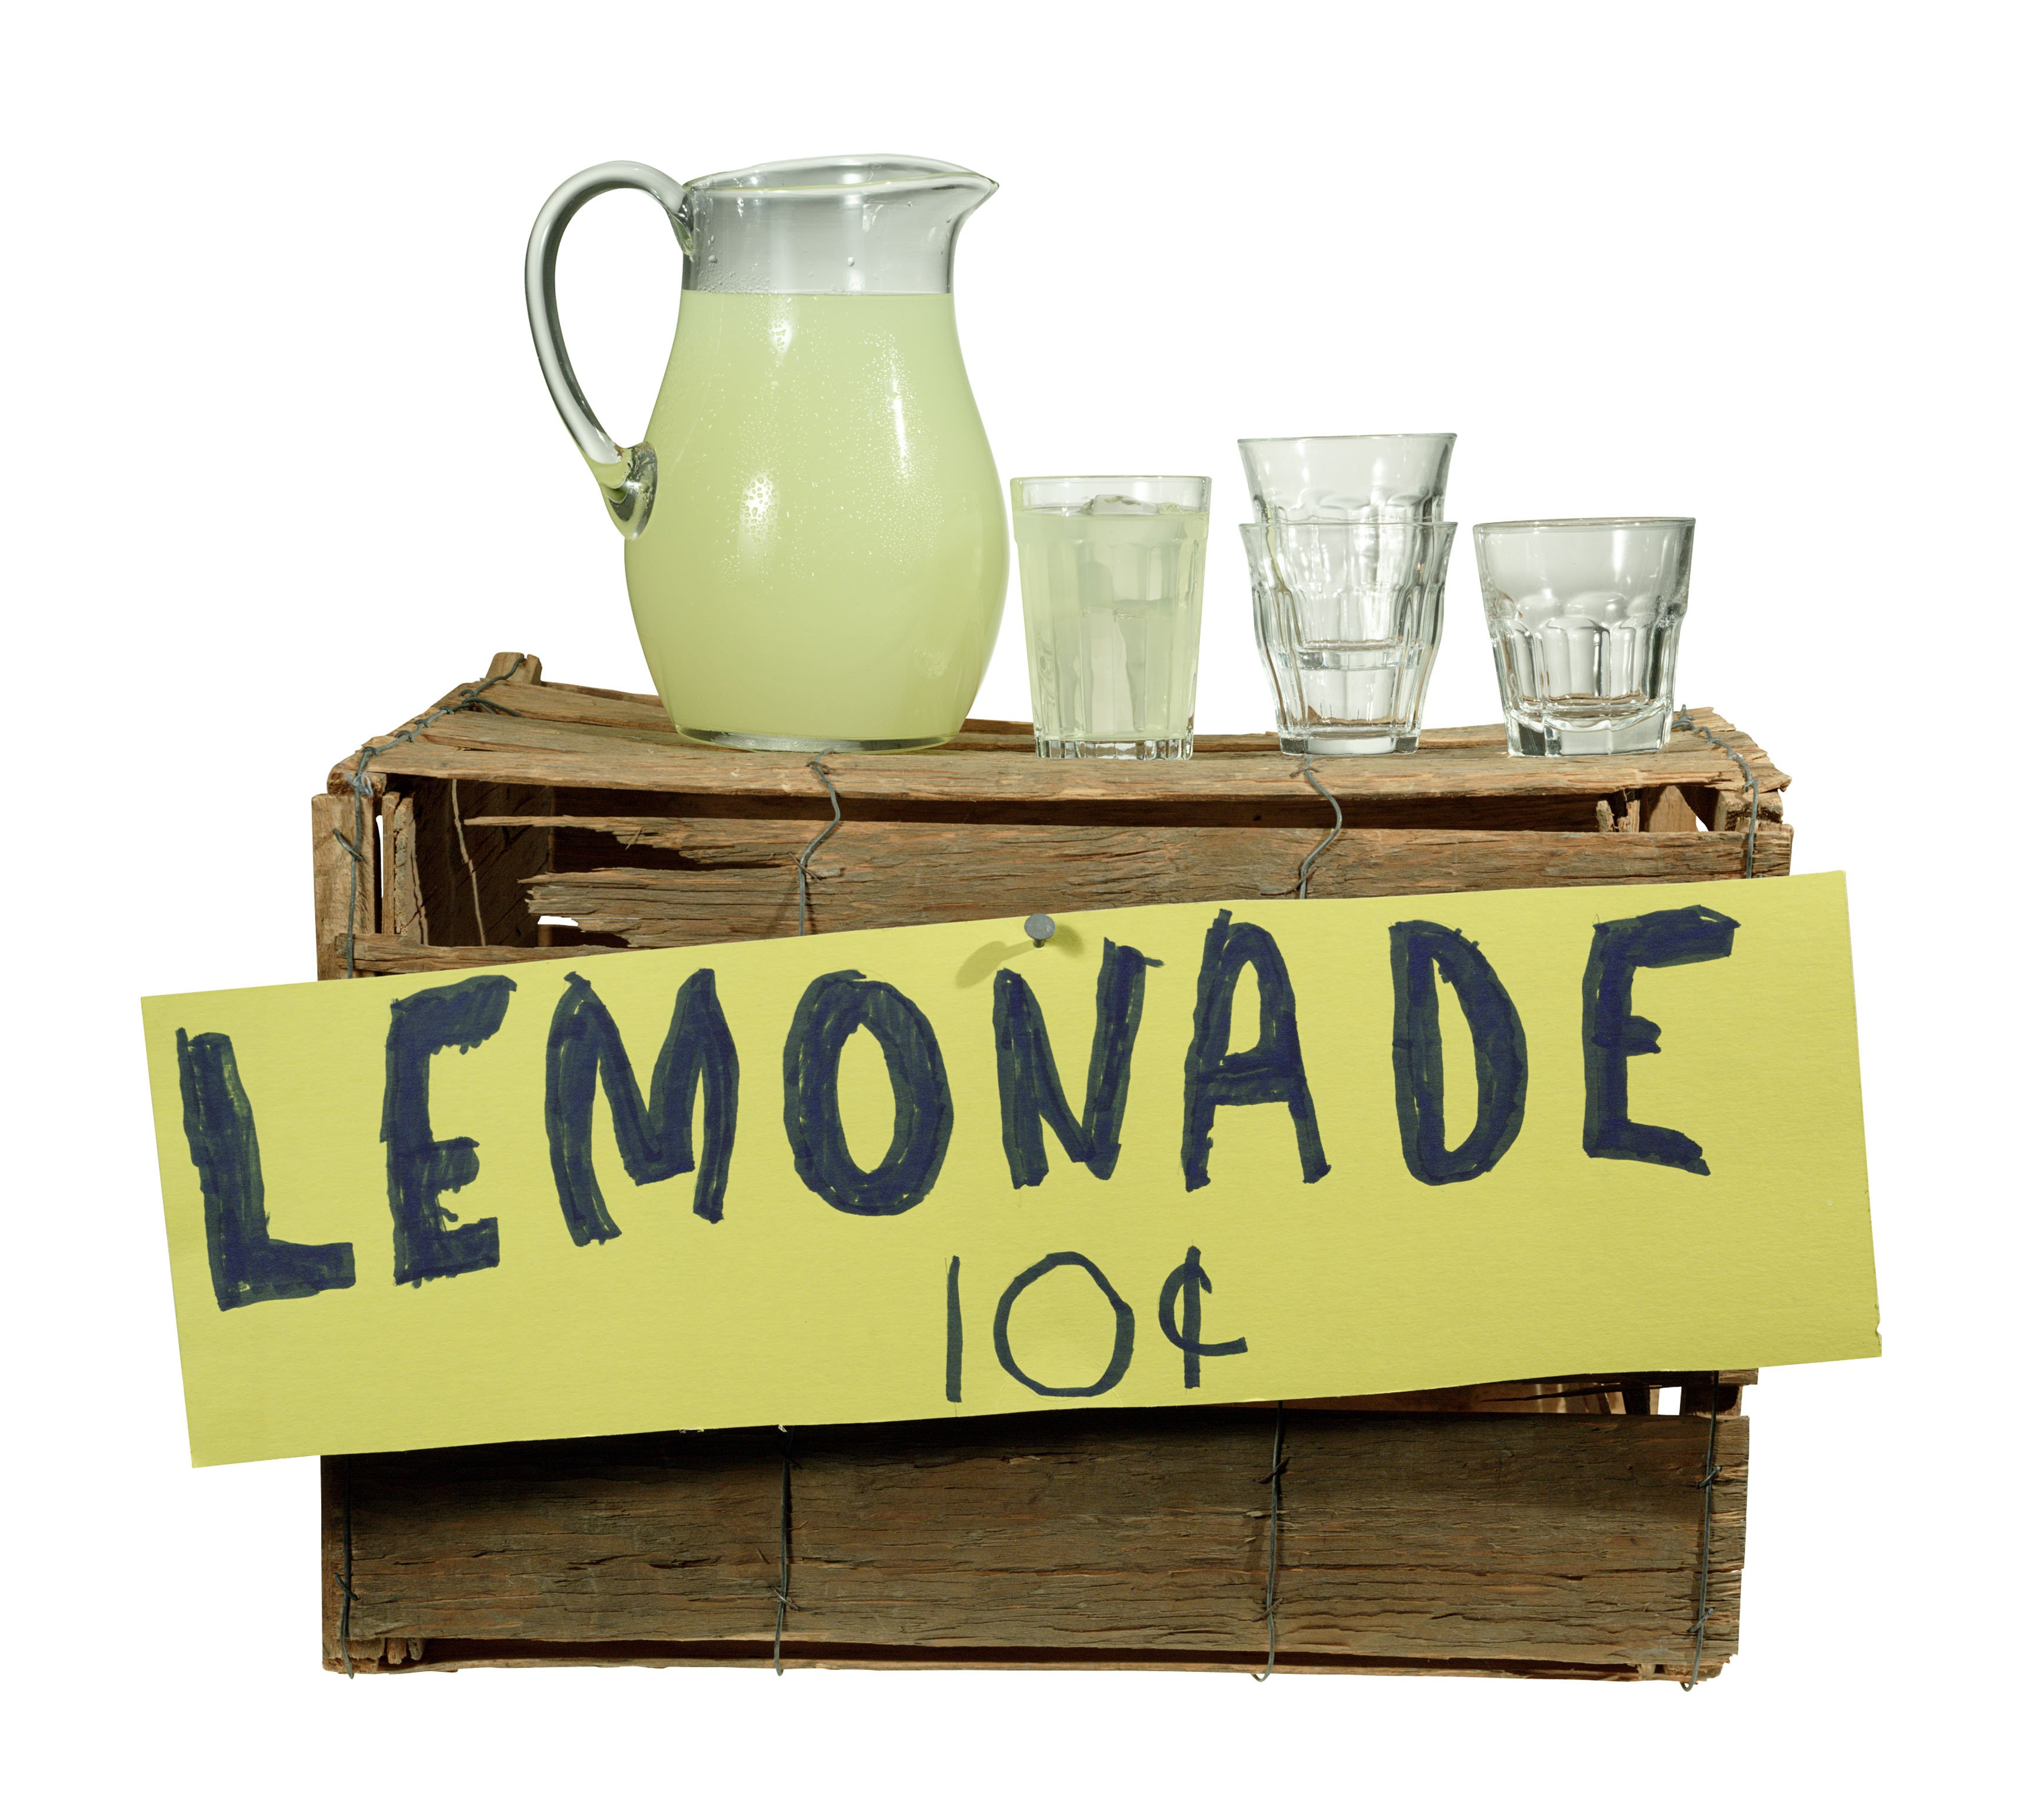 Summer Memories Lemonade Stand Added Up To Little By Dad